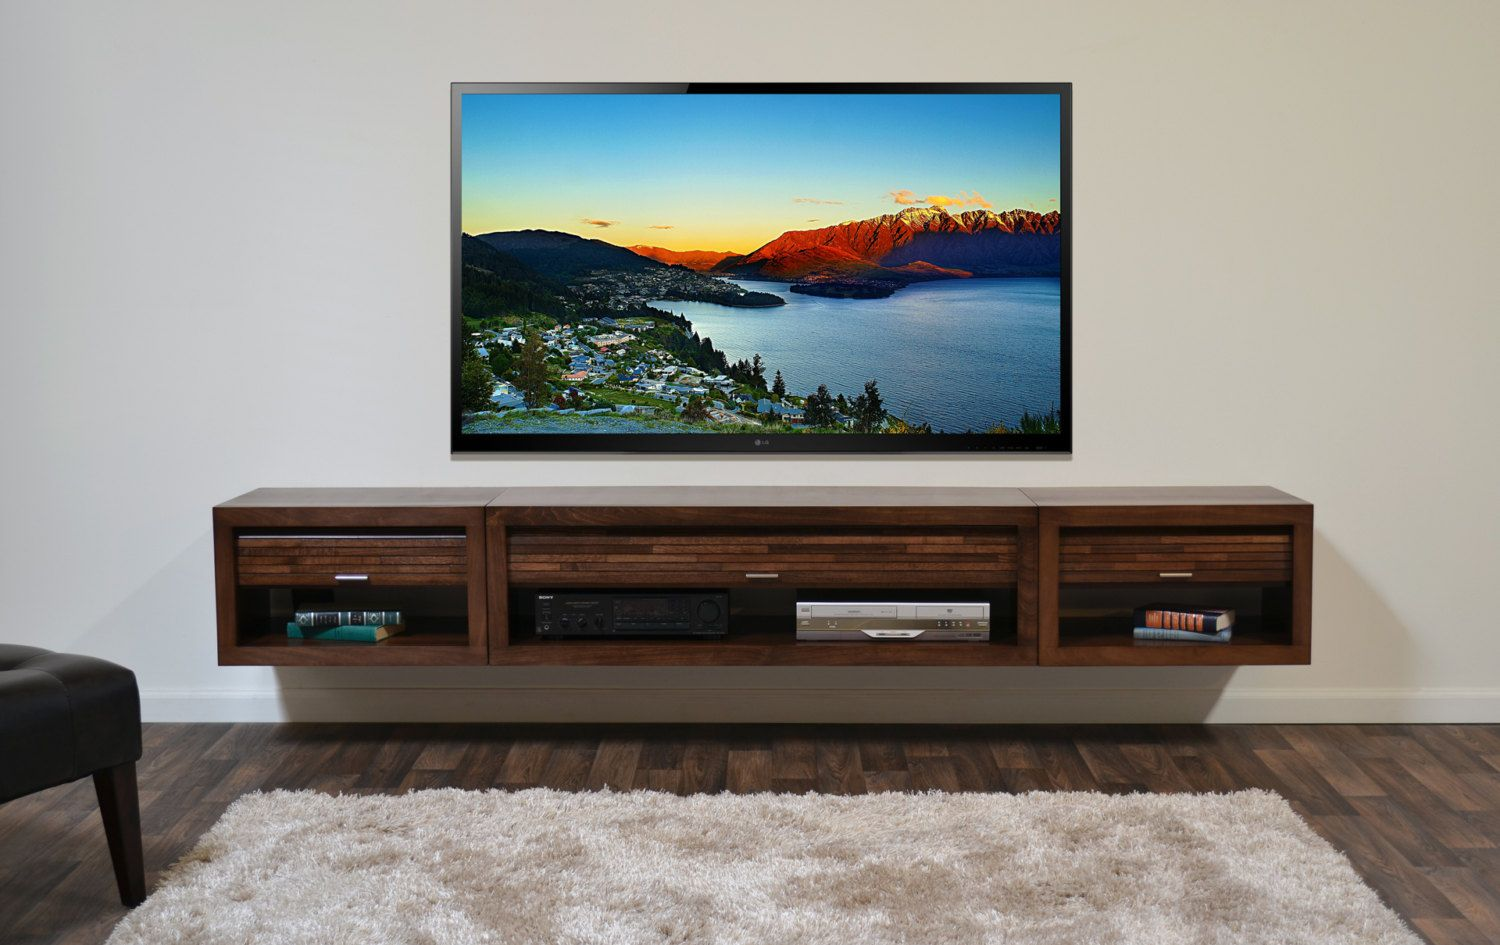 Beau Cute Floating Media Cabinet For Modern Furniture Ideas: Beautiful Floating Media  Cabinet For Modern Furniture Ideas With Floating Cabinet Under Tv